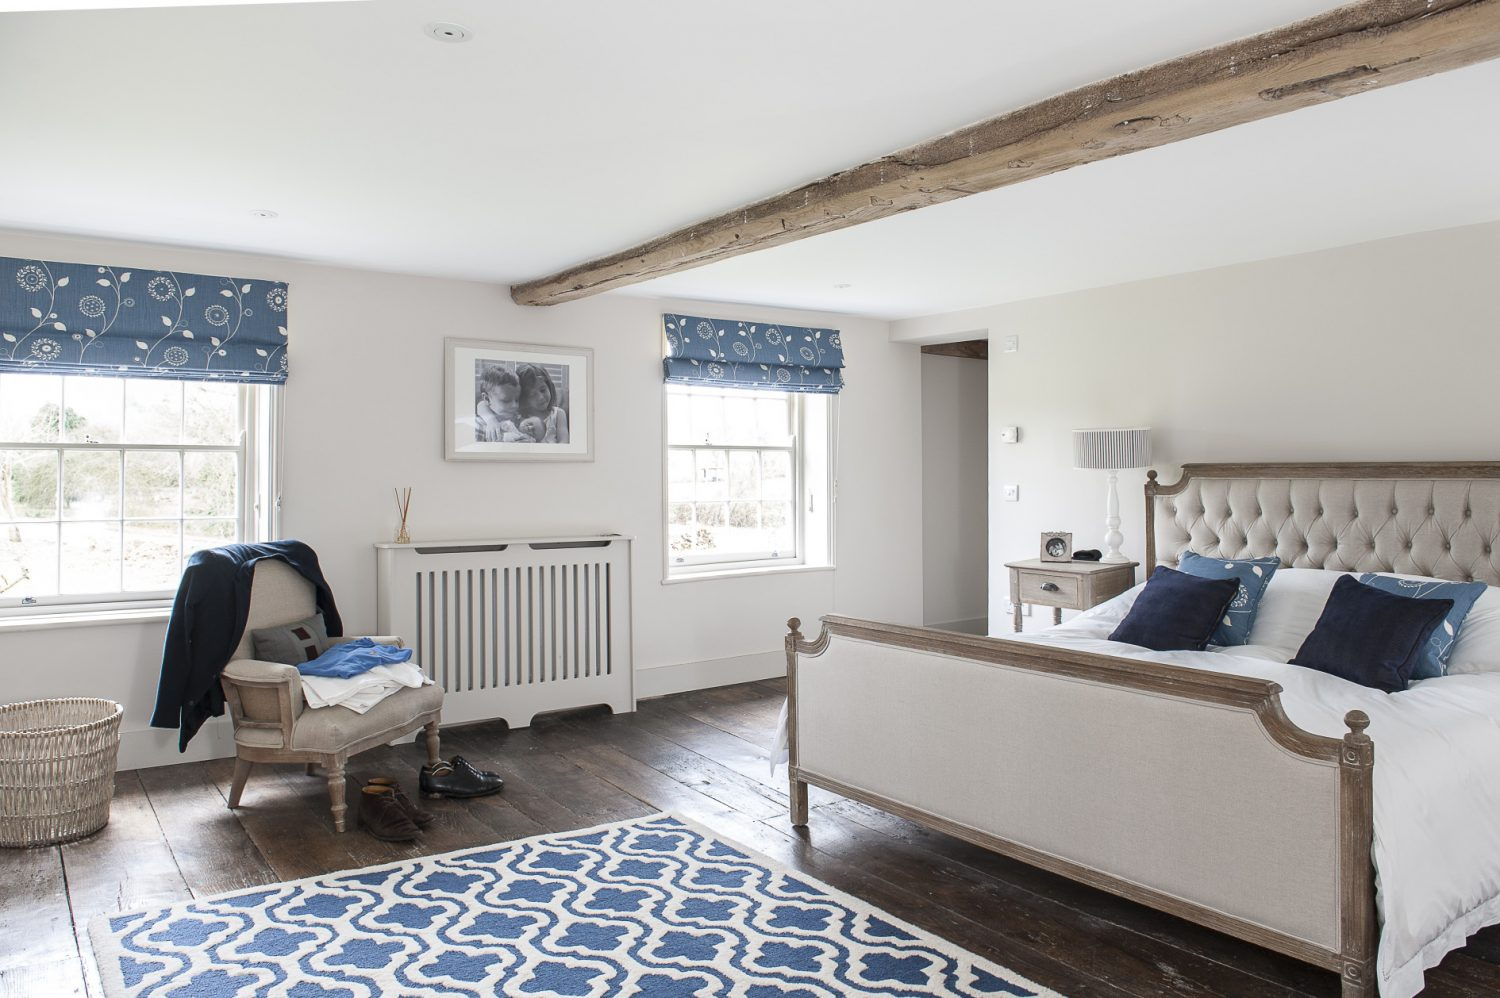 The master bedroom retains its original, wide oak floorboards. Waxed rather than stained, they provide the perfect backdrop for this pretty patterned rug and classic bedroom furniture including a bed by Feather & Black